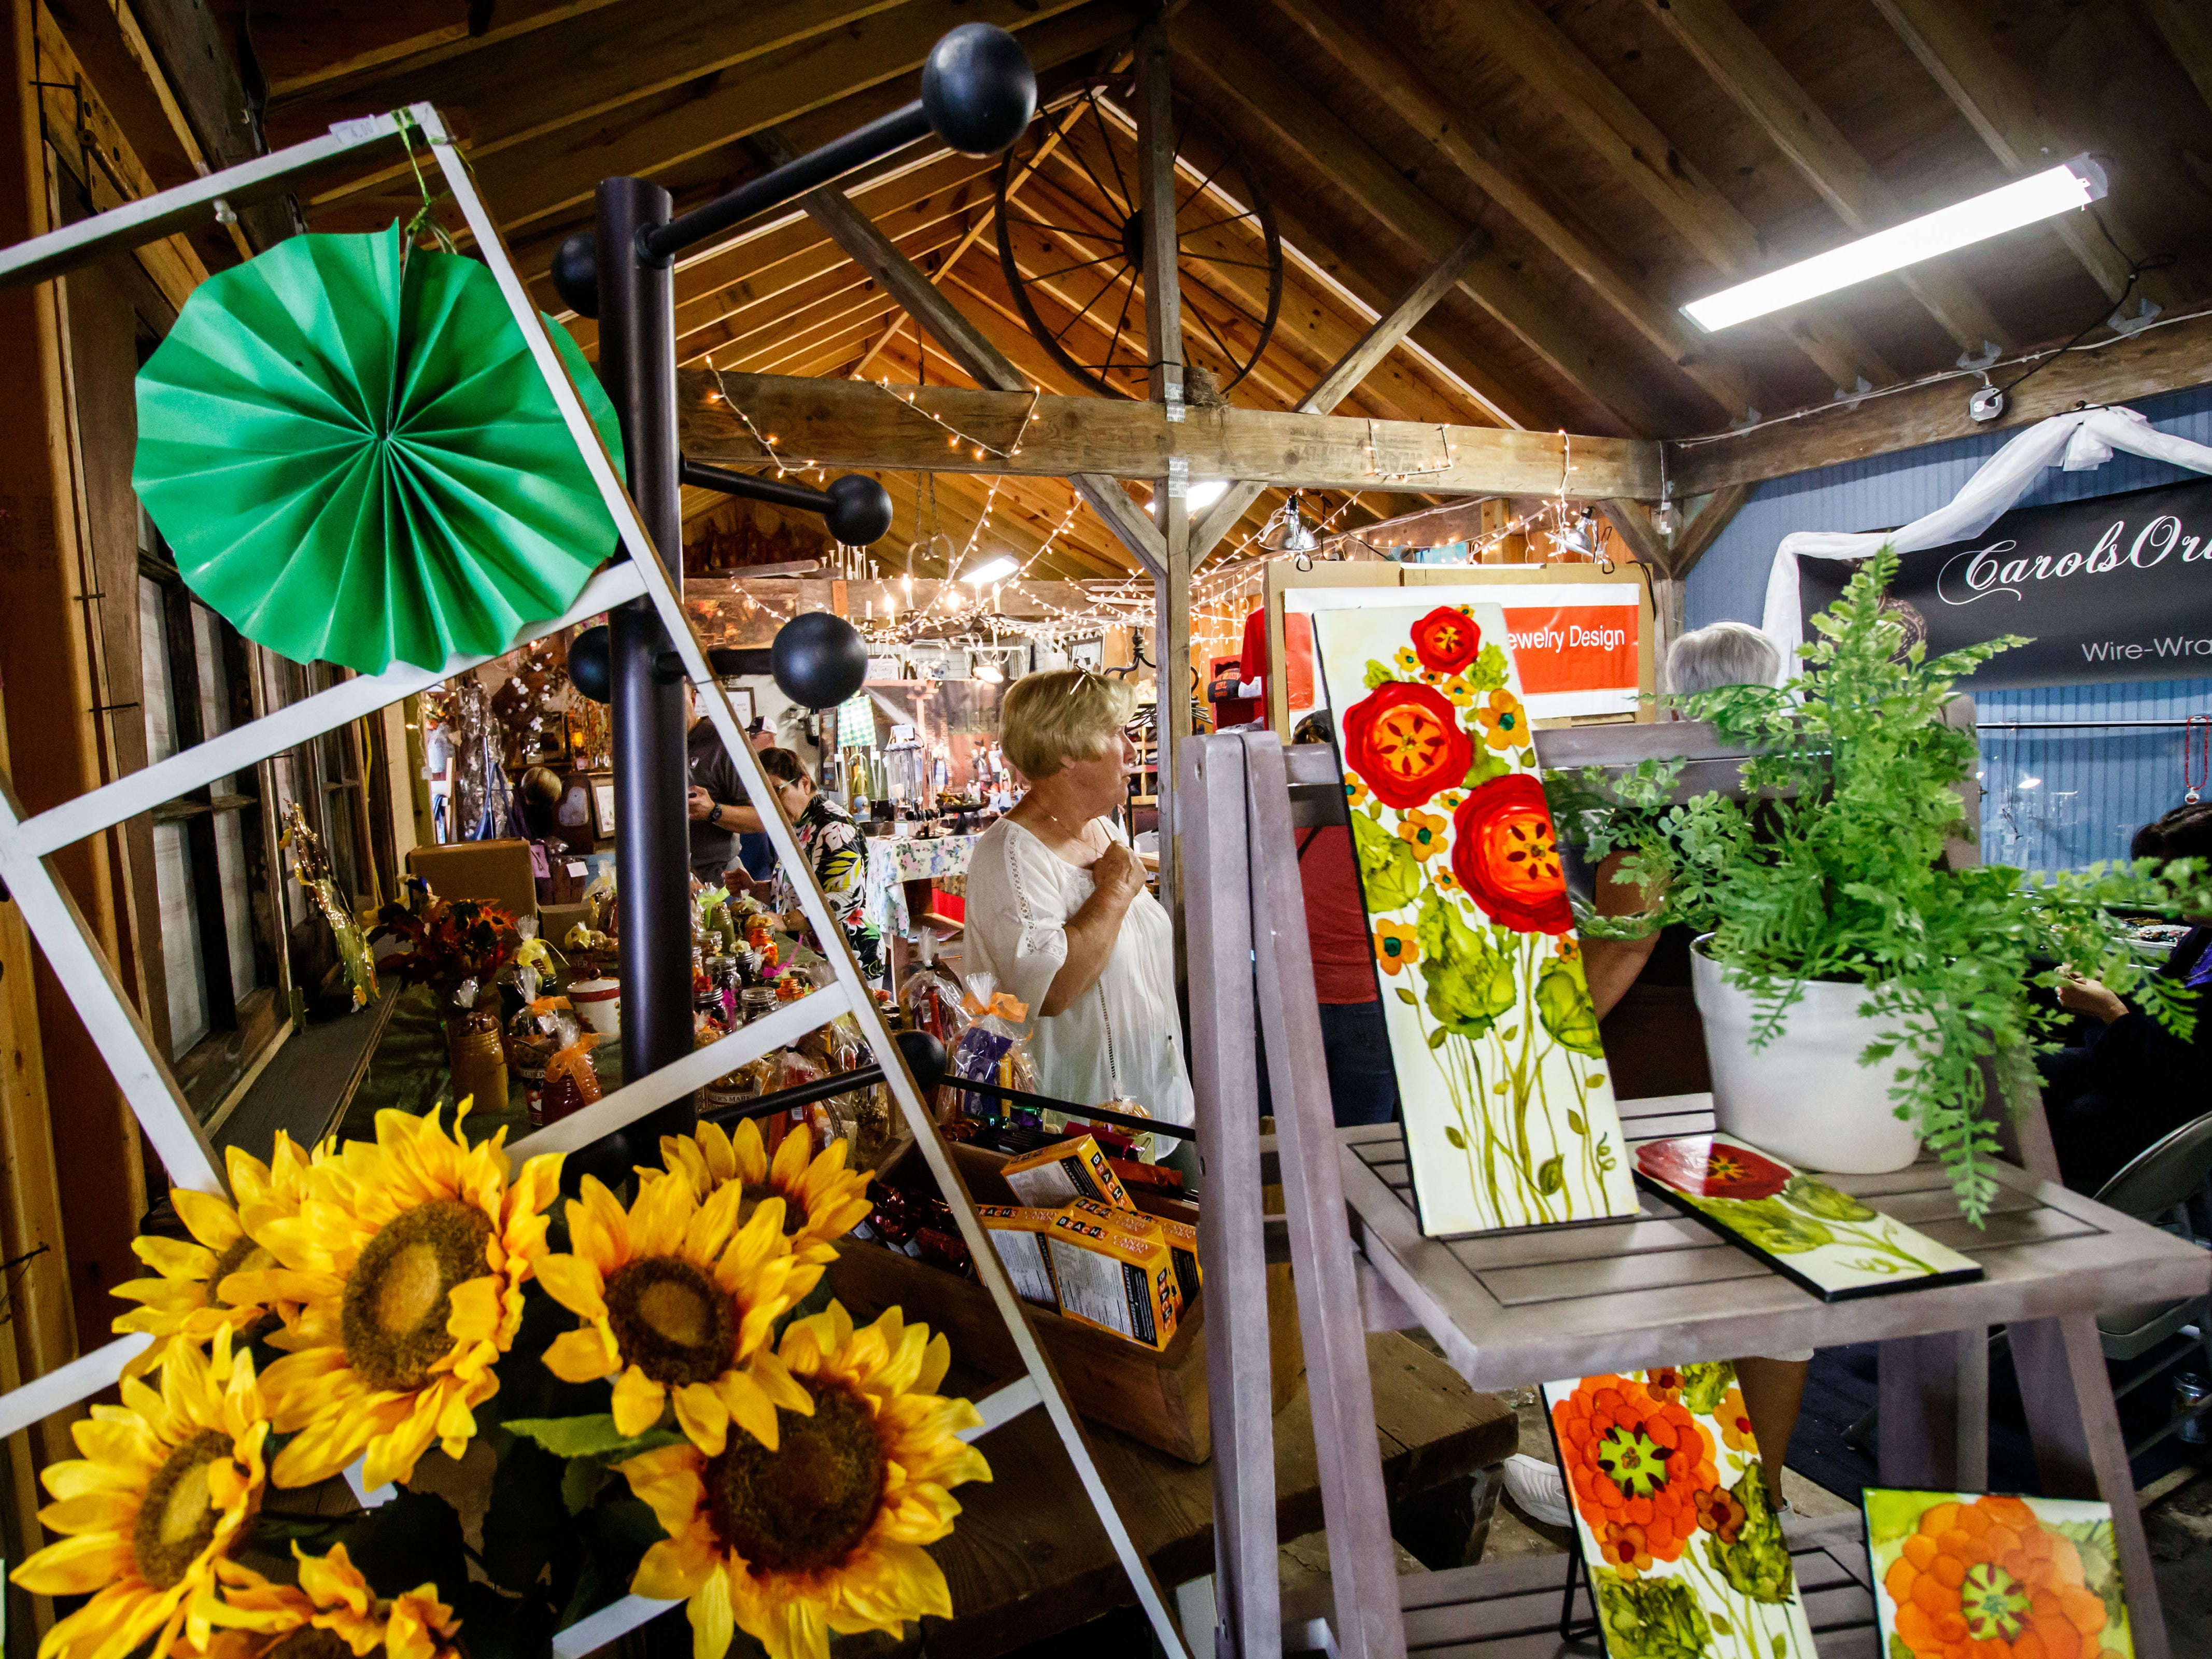 Customer shop for vintage, antique, upcycled, recycled and handmade treasures during Barn Market Weekend at Hawthorne Hill Farm in New Berlin on Friday, Sept. 7, 2018. The free three-day event features more than 50 local artisans and vendors.